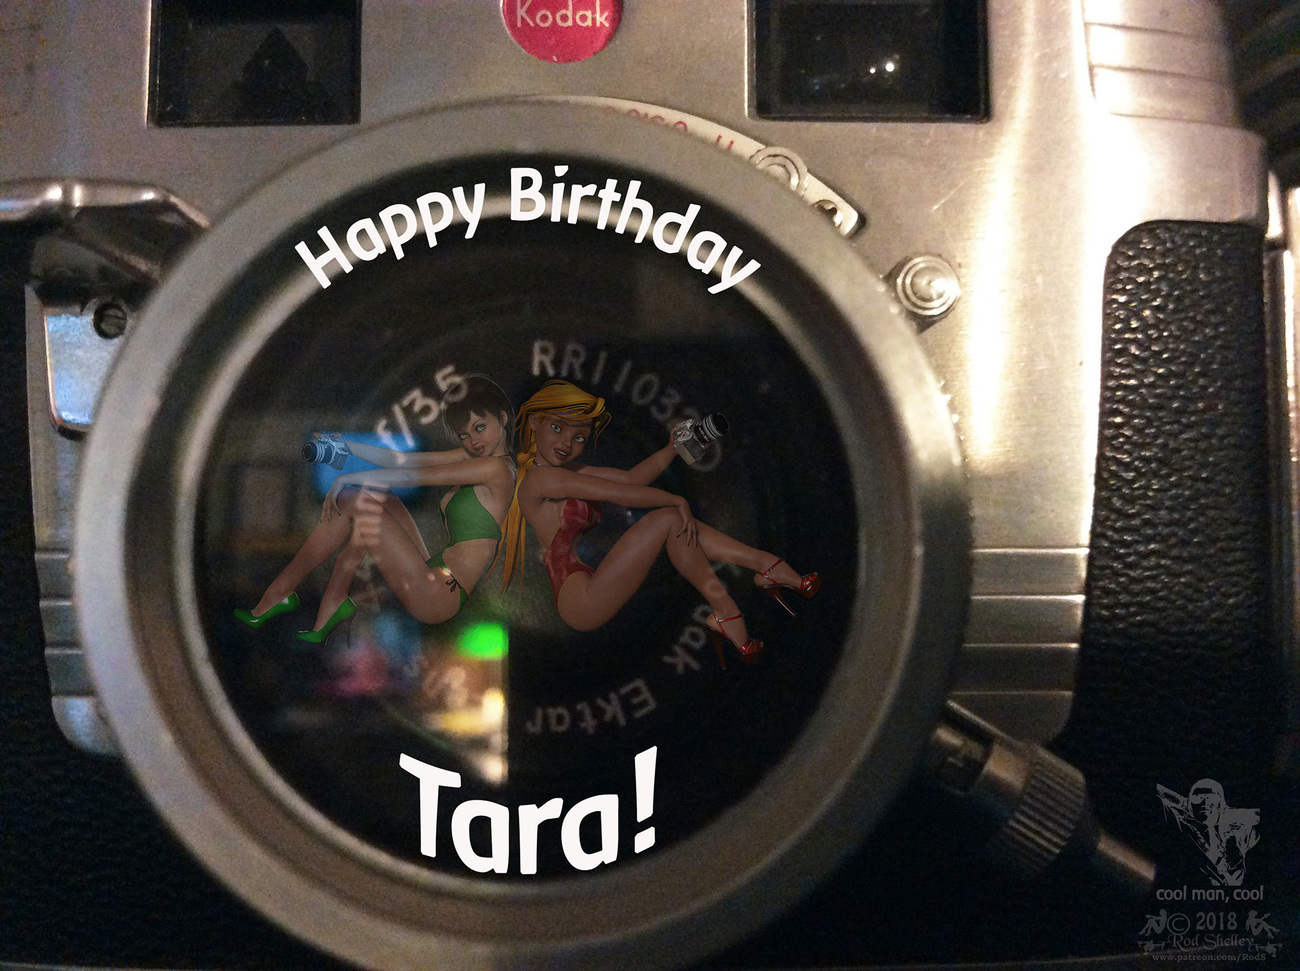 Happy Birthday, Tara! (auntietk)